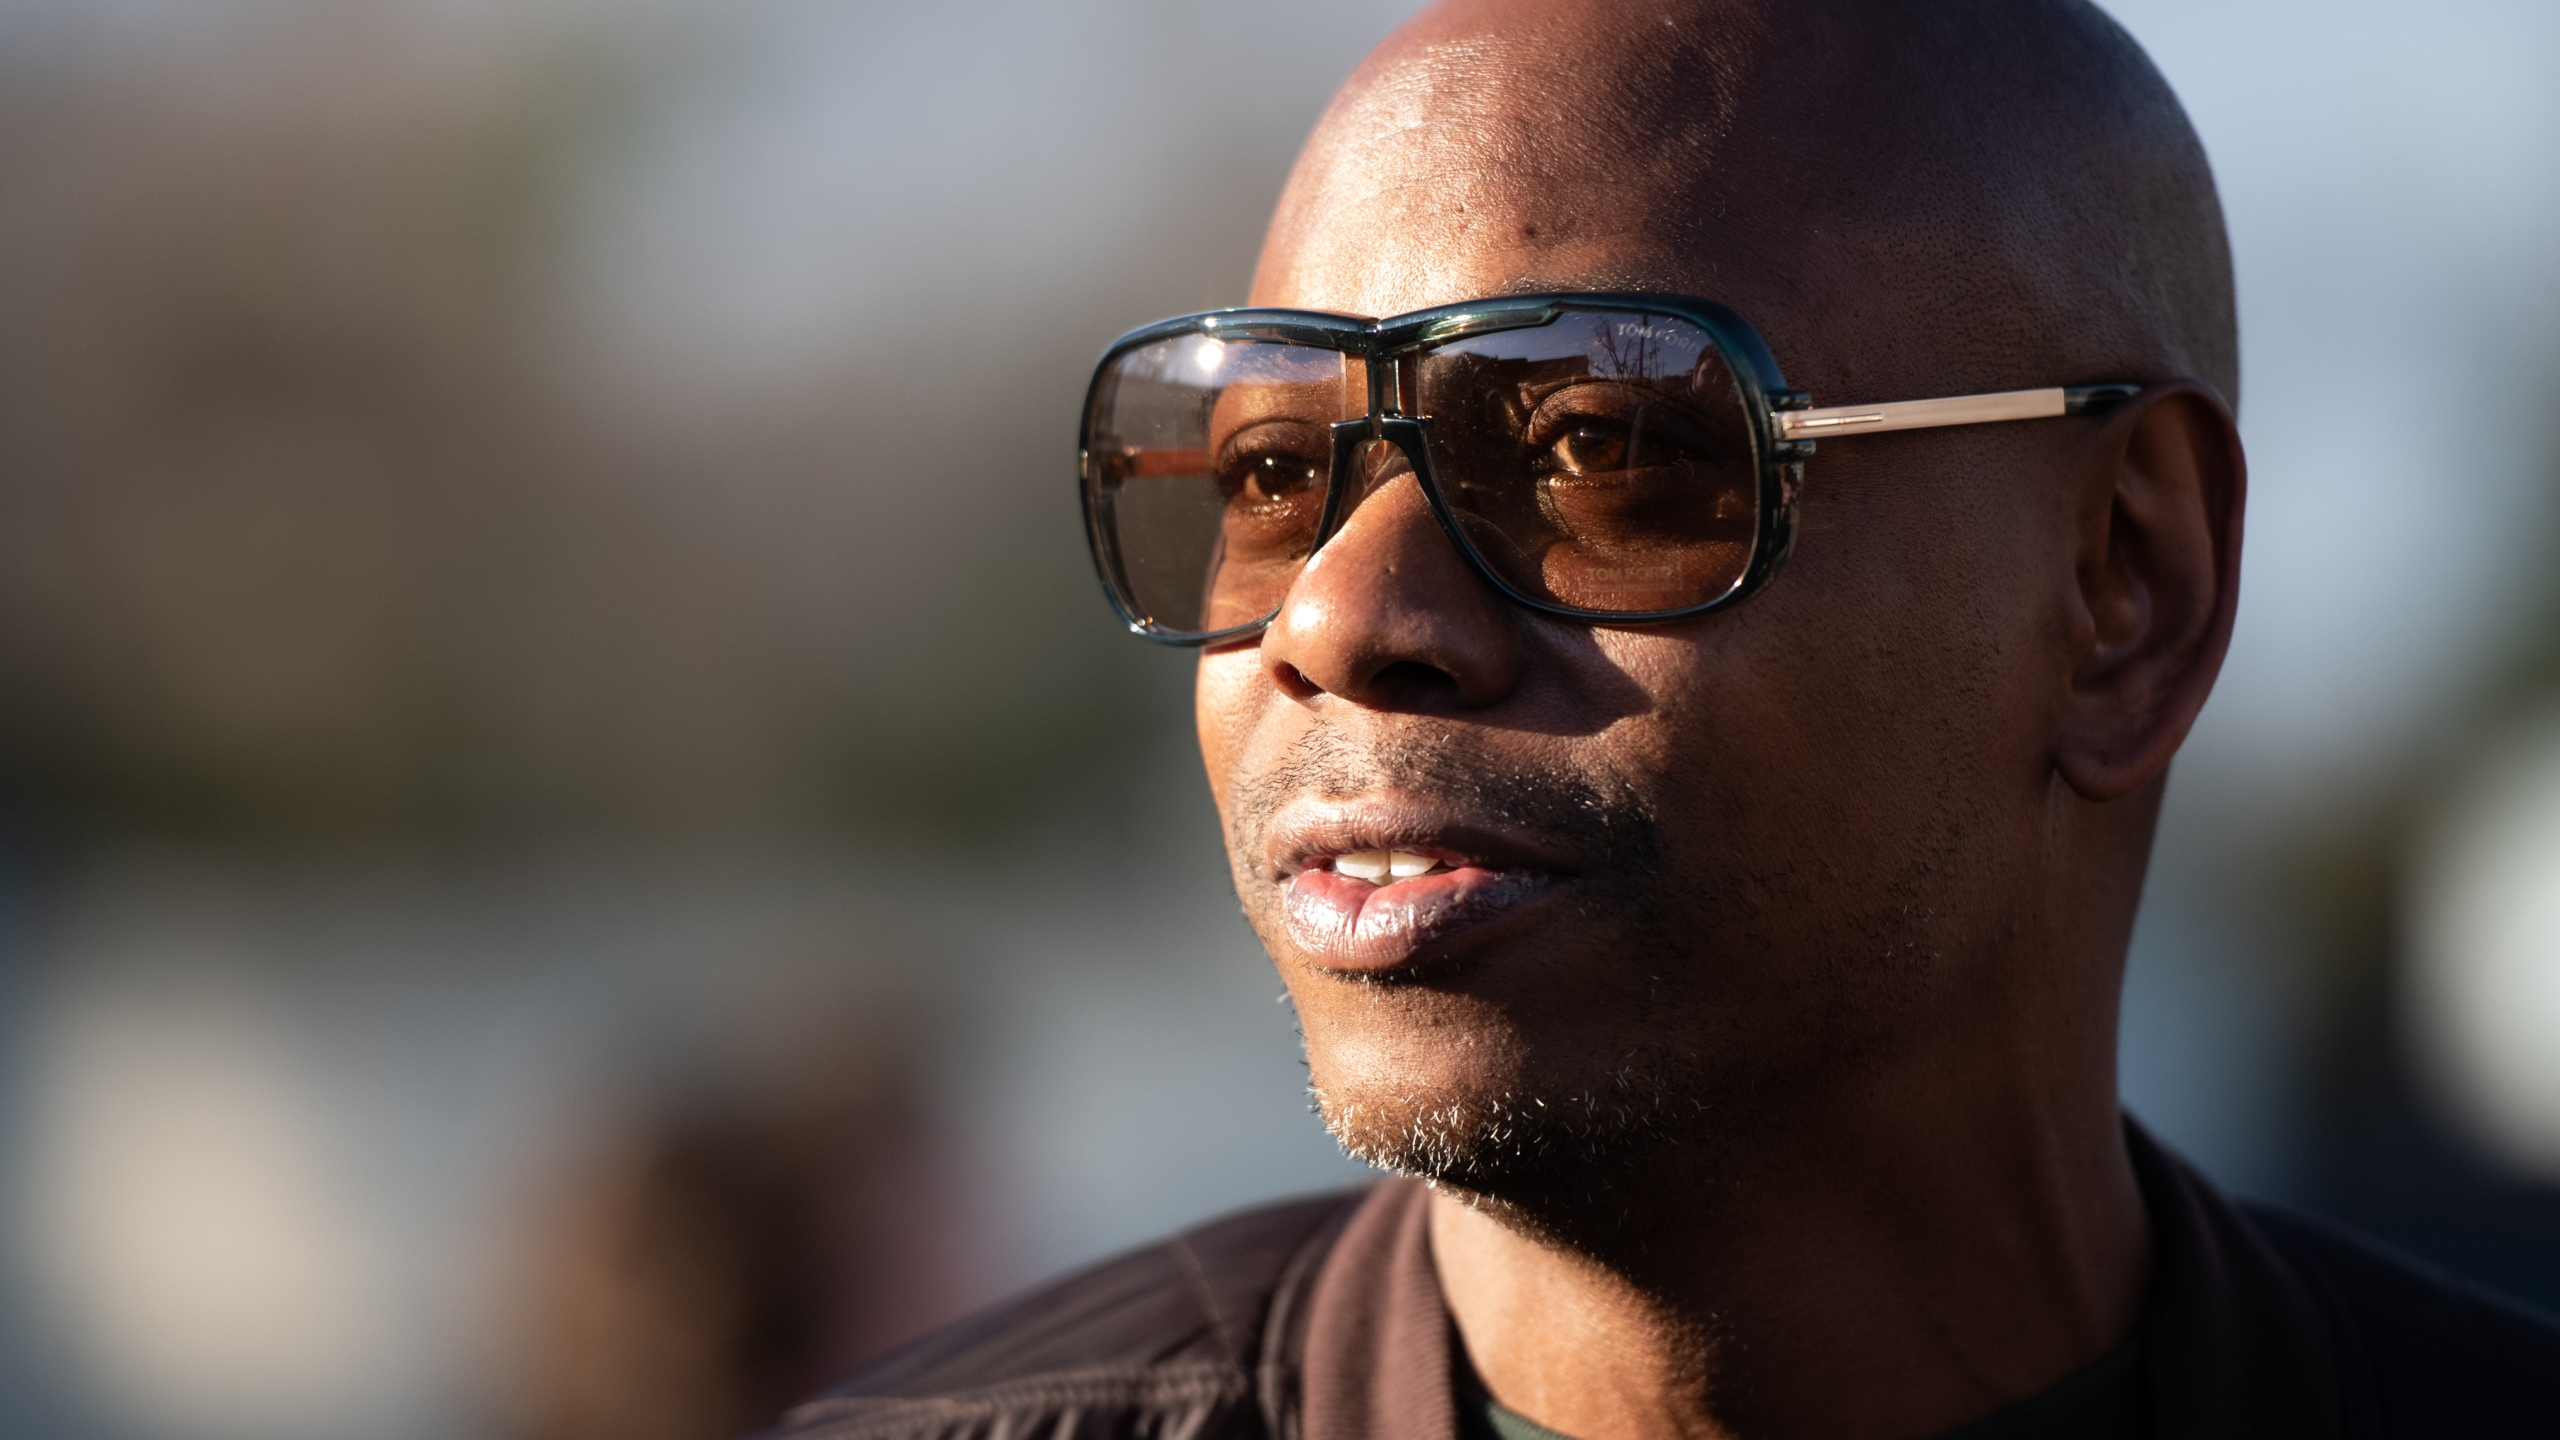 Comedian Dave Chappelle campaigns for Democratic presidential candidate Andrew Yang on Jan. 30, 2020 in North Charleston, South Carolina. (Sean Rayford/Getty Images)